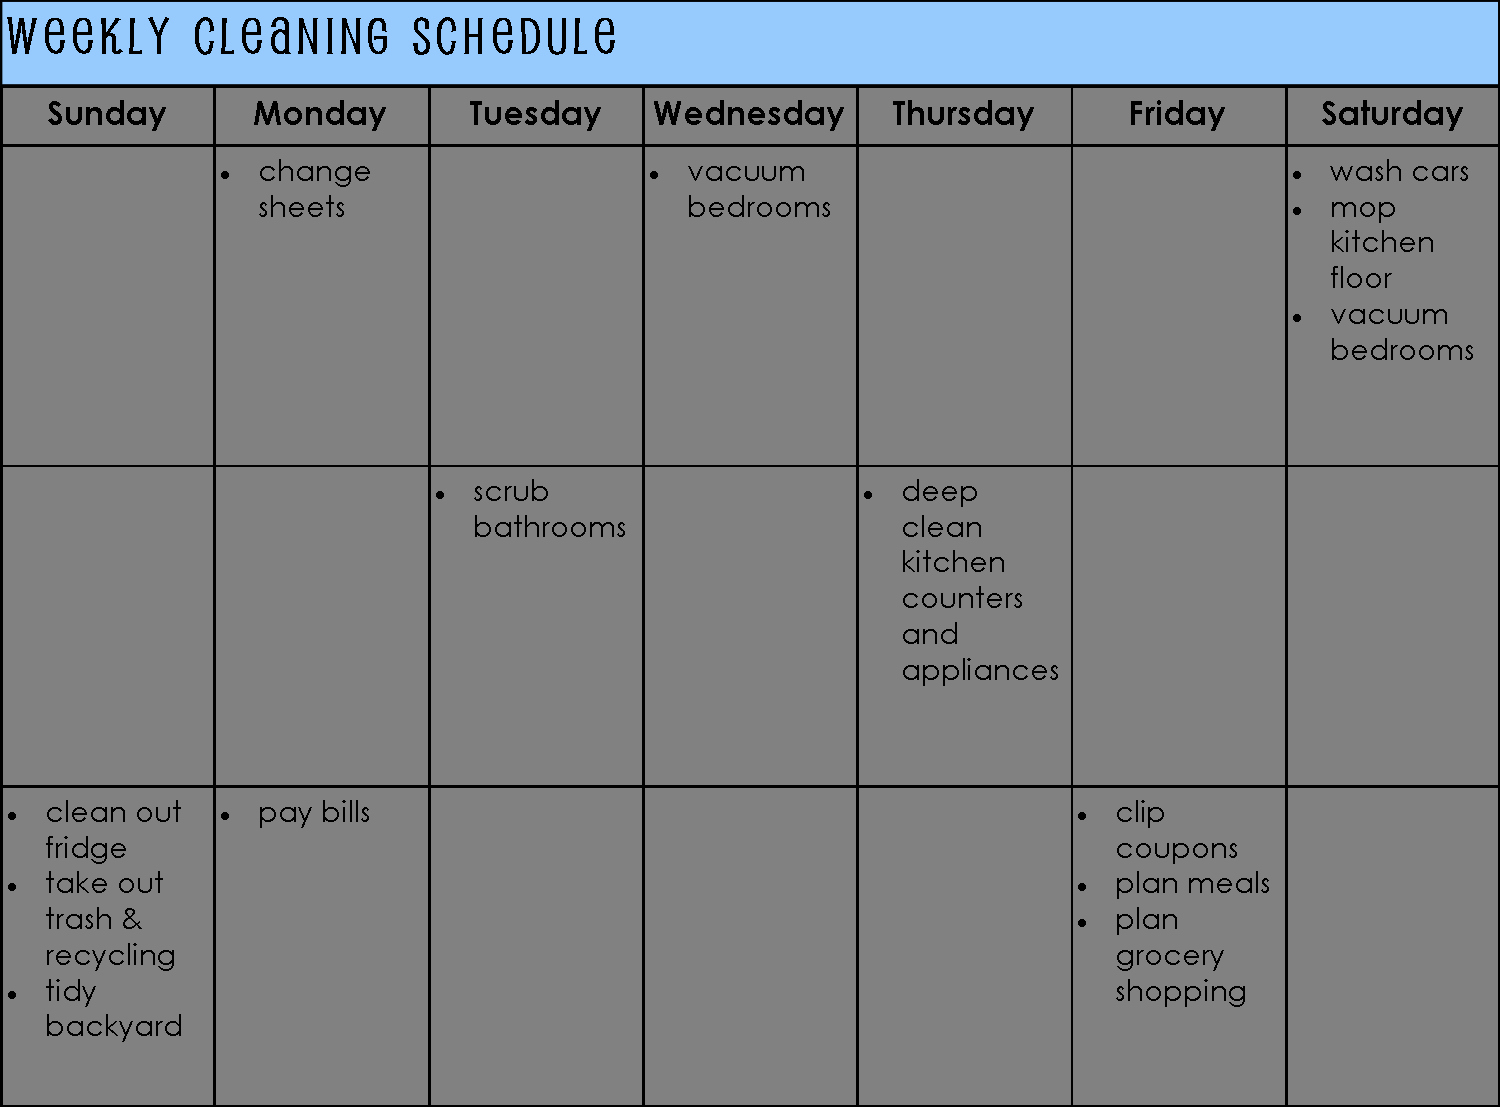 Cleaning Schedule Template for Home Inspirational Weekly Based Cleaning Schedule Template for Personal V M